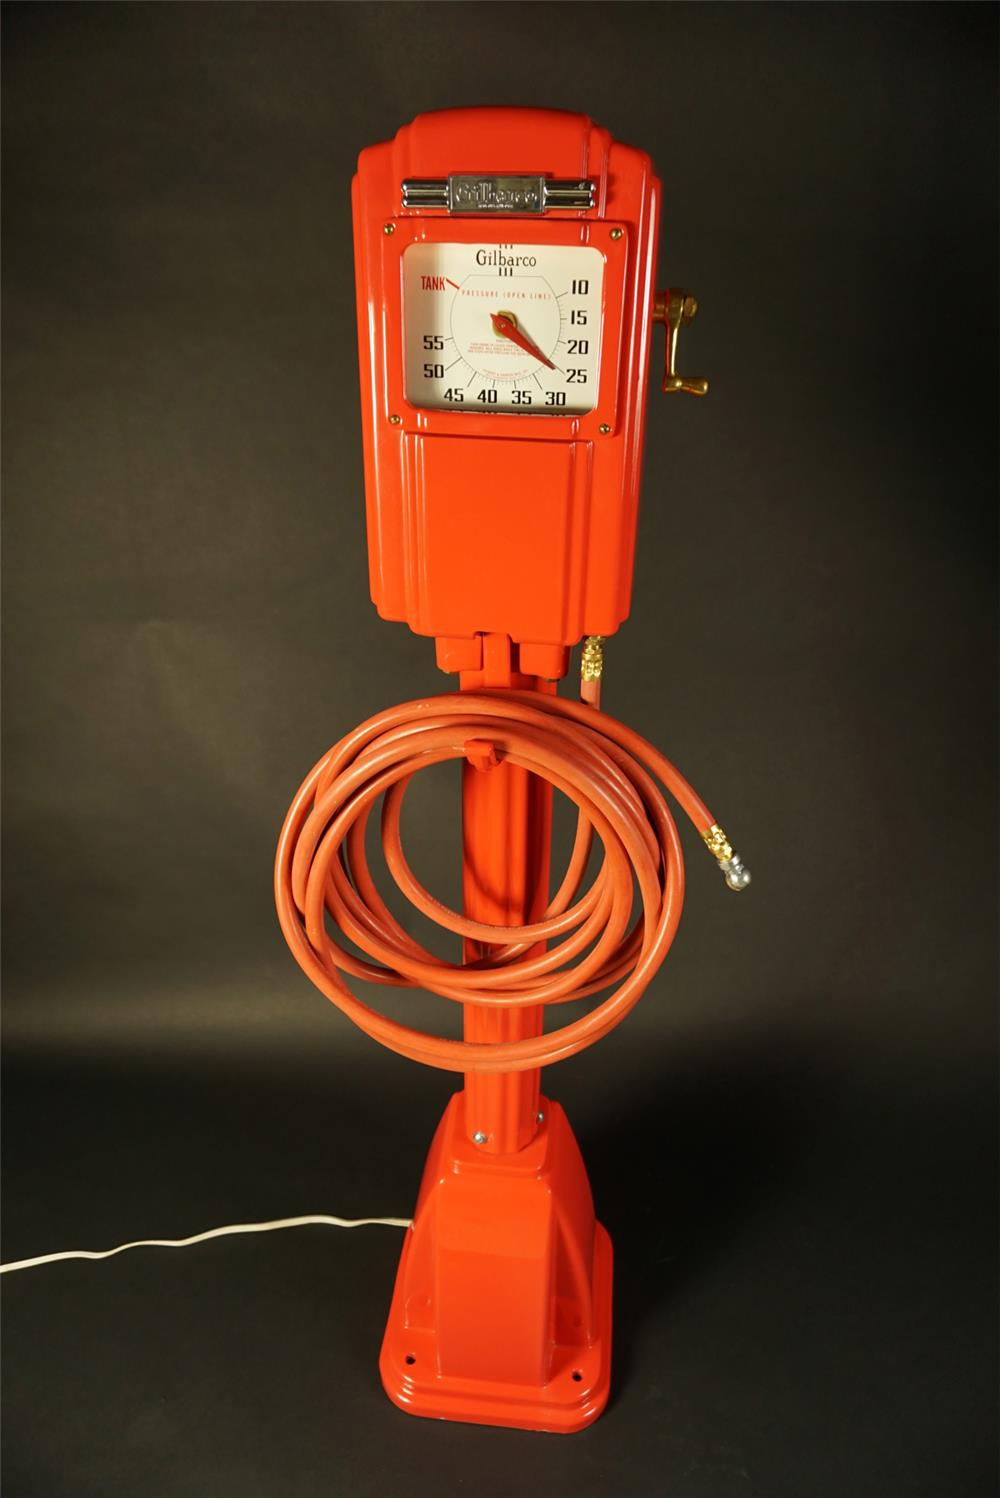 Stunning 1930s restored Gilbarco filling station air meter with art deco styling. - Front 3/4 - 191565